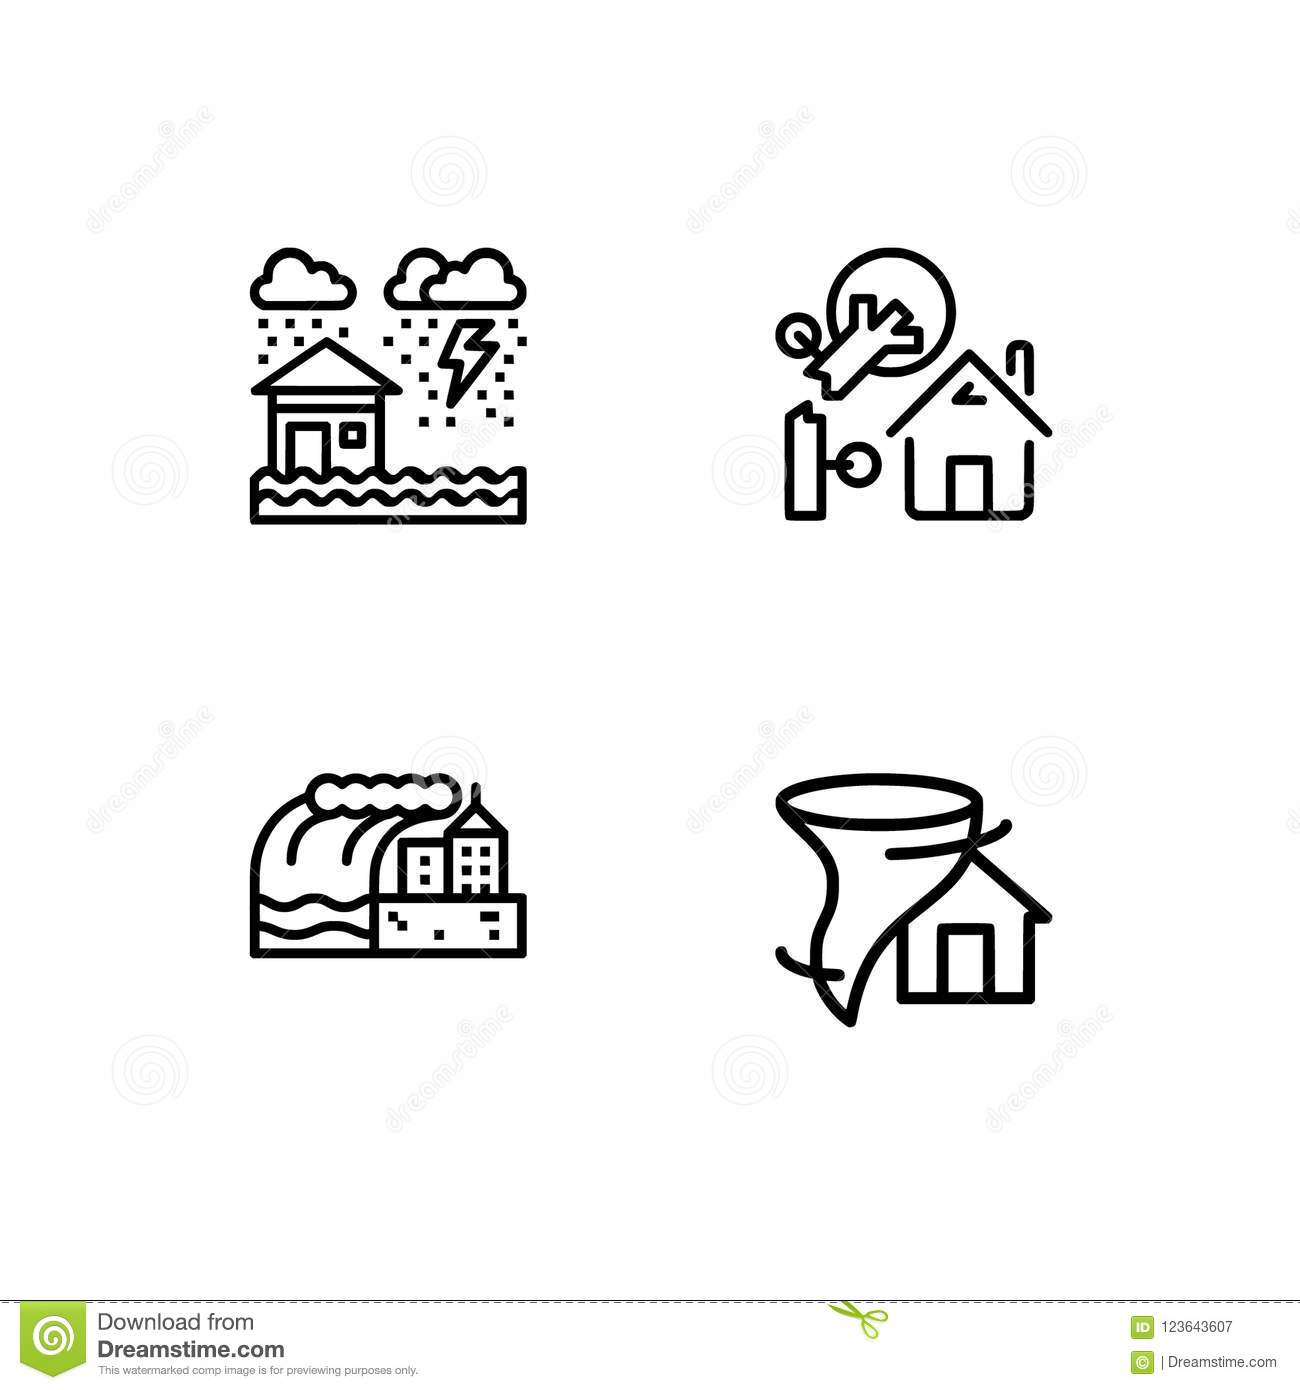 Cataclysms and natural disasters outline icons set EPS 10 vector format. Transparent background.